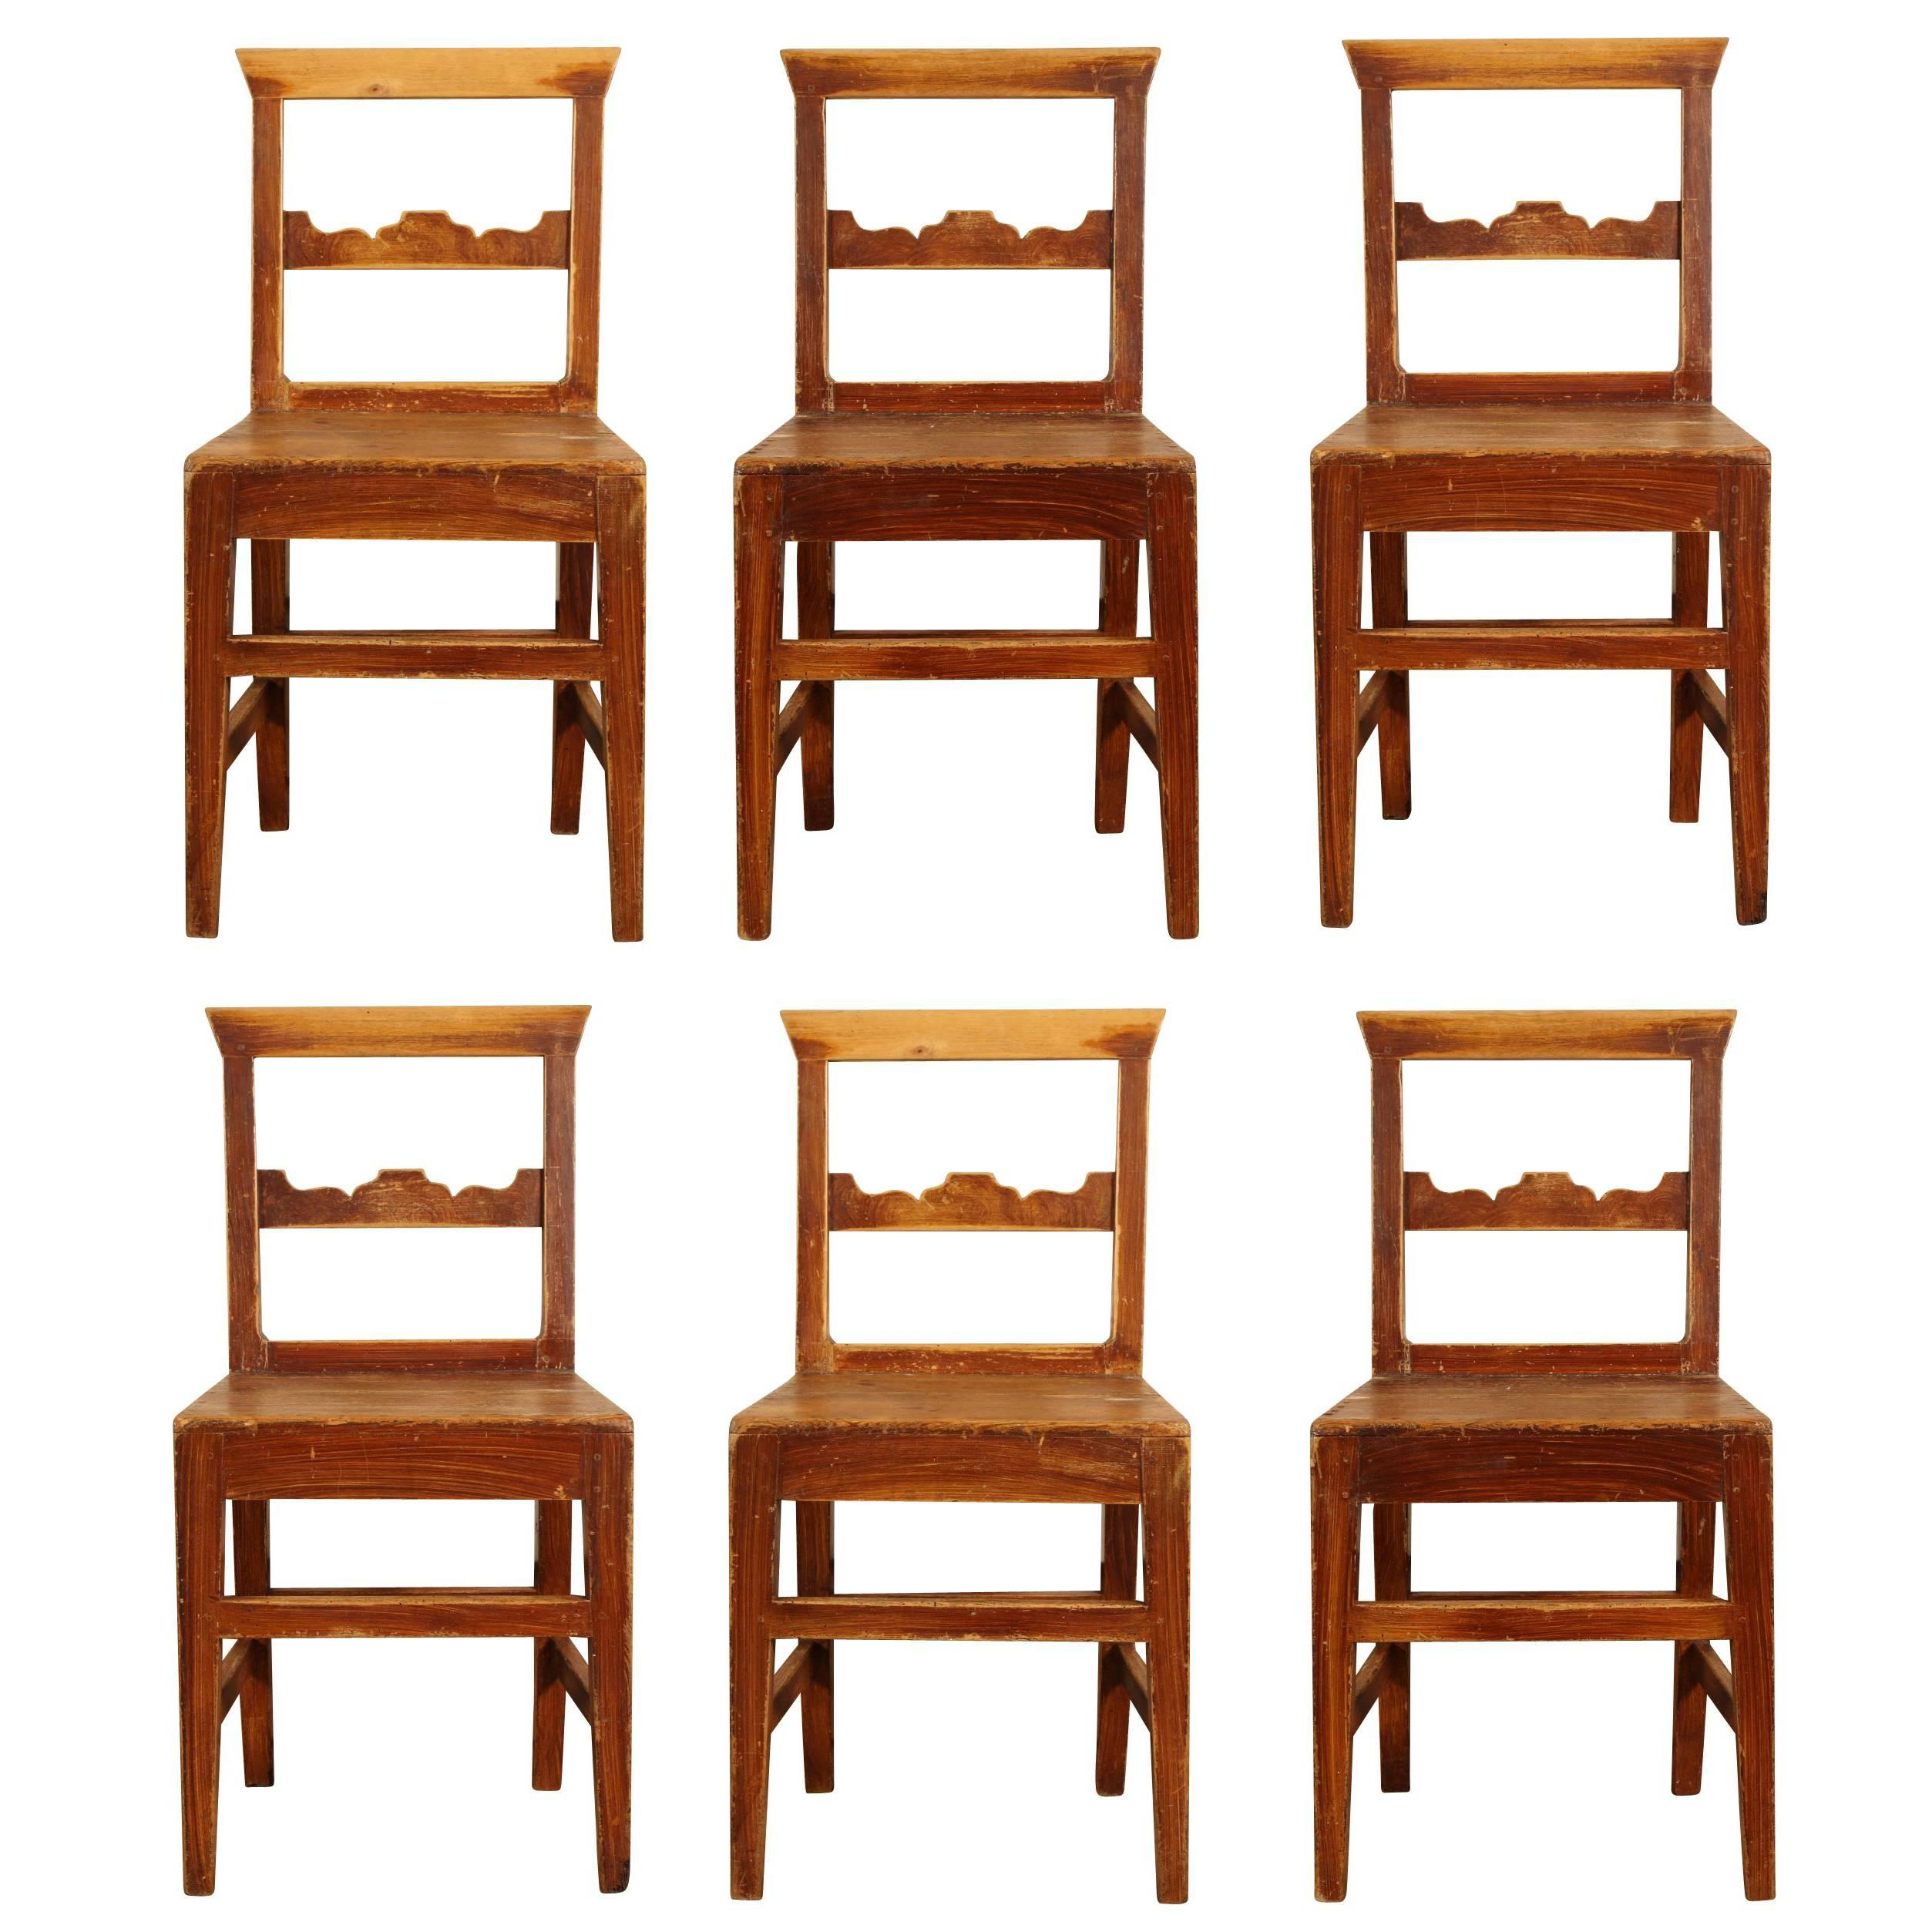 Rustic French Dining Chairs french provincial chairs. french provincial 18th cent walnut open